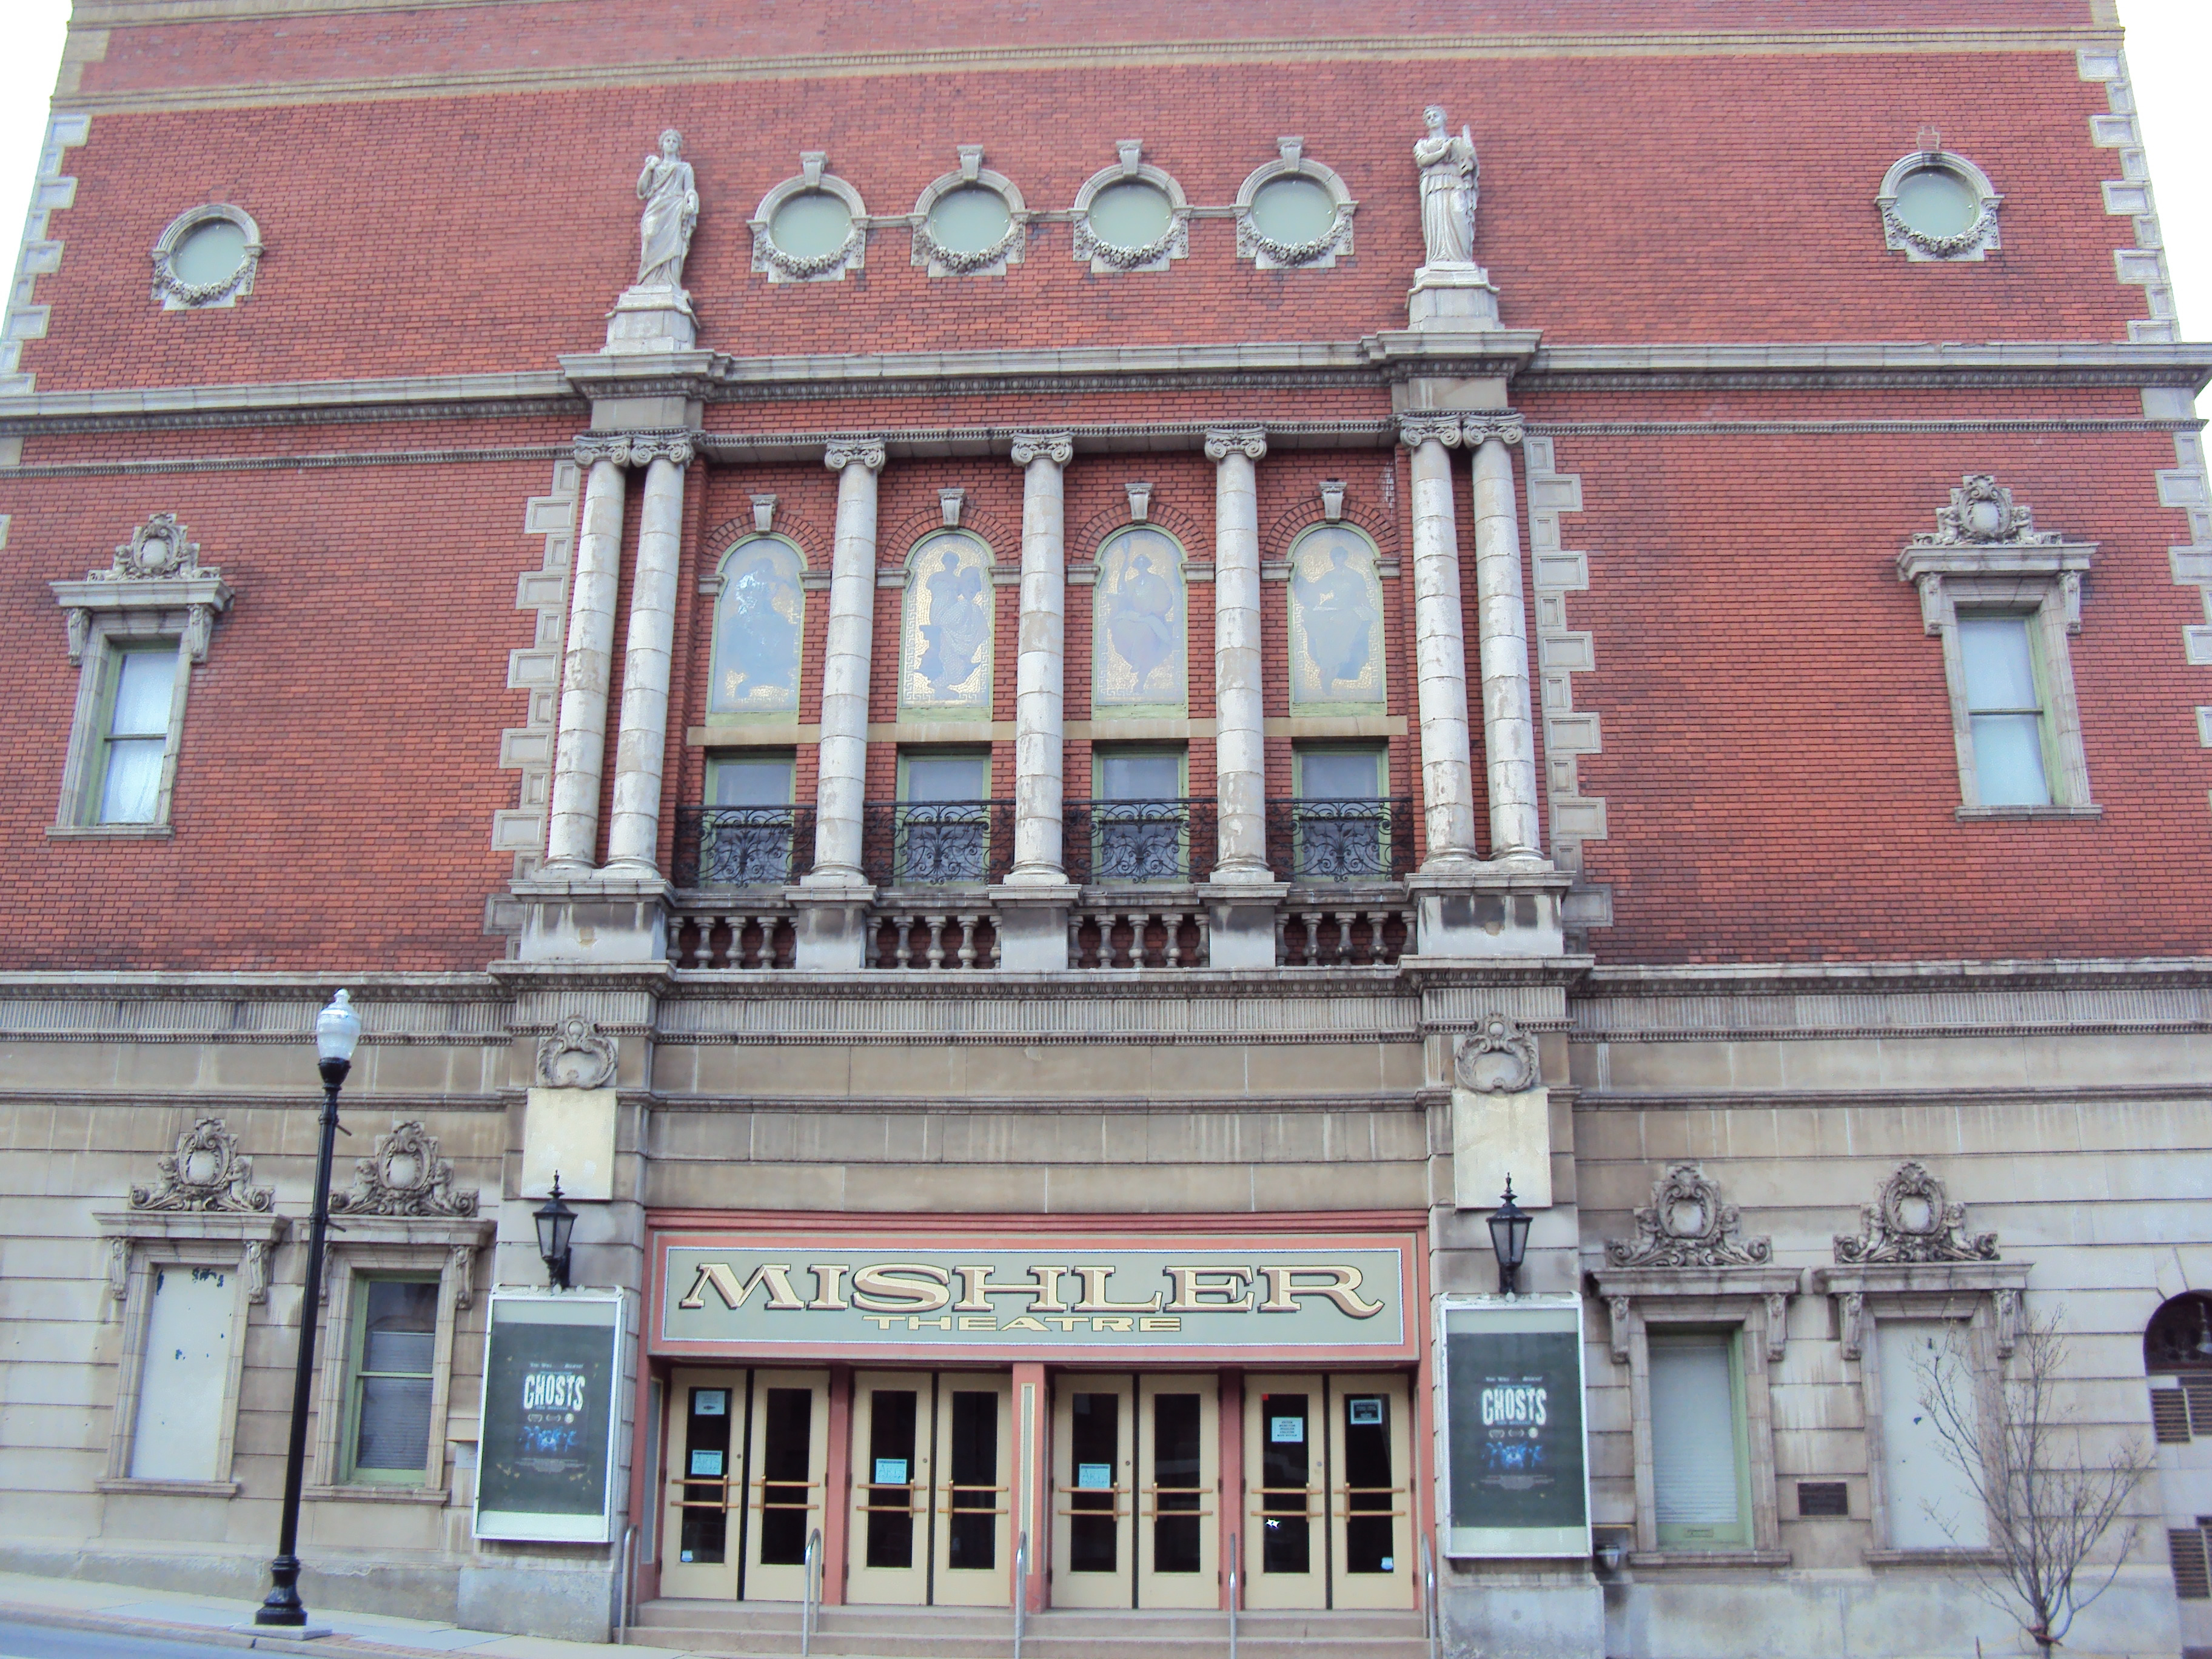 The Mishler Theatre today